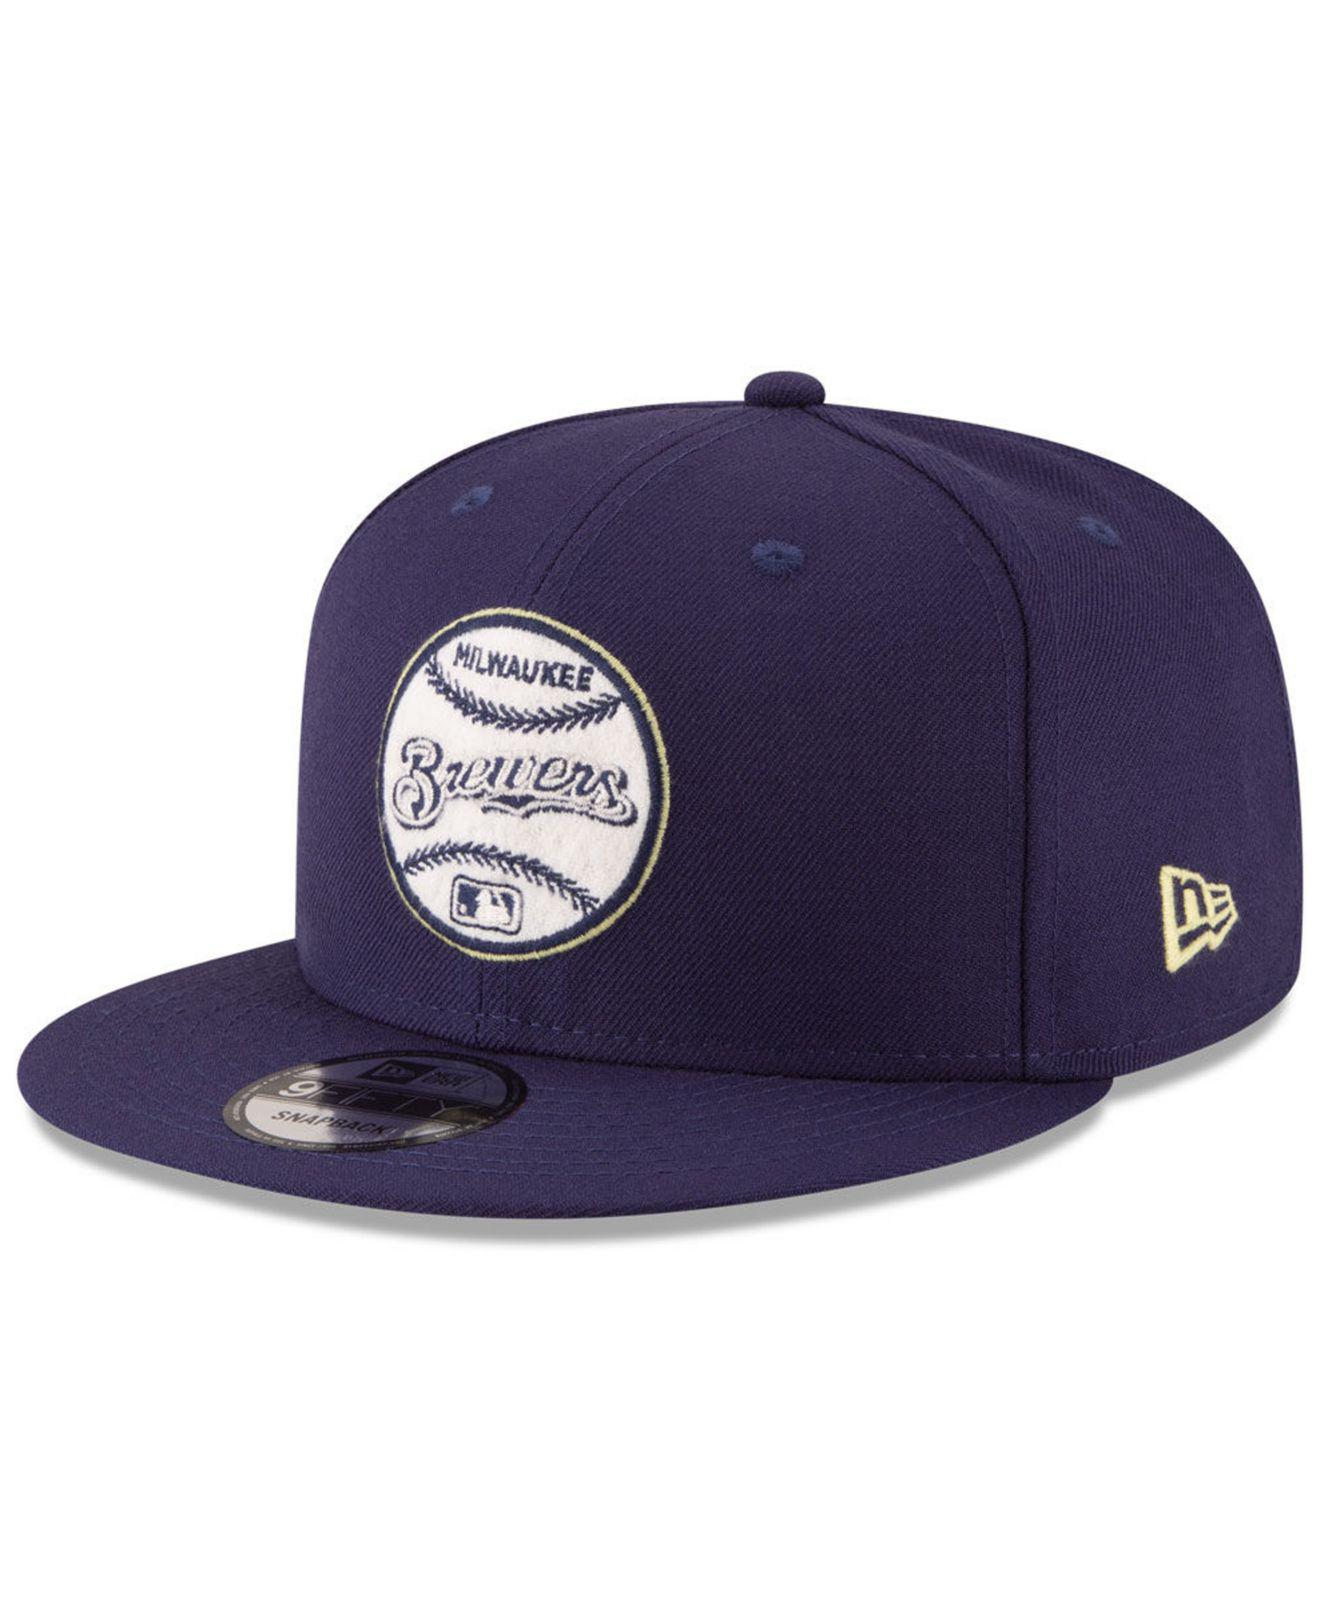 separation shoes abcdd 2f7a0 ... Milwaukee Brewers Vintage Circle 9fifty Snapback Cap for Men - Lyst.  View fullscreen